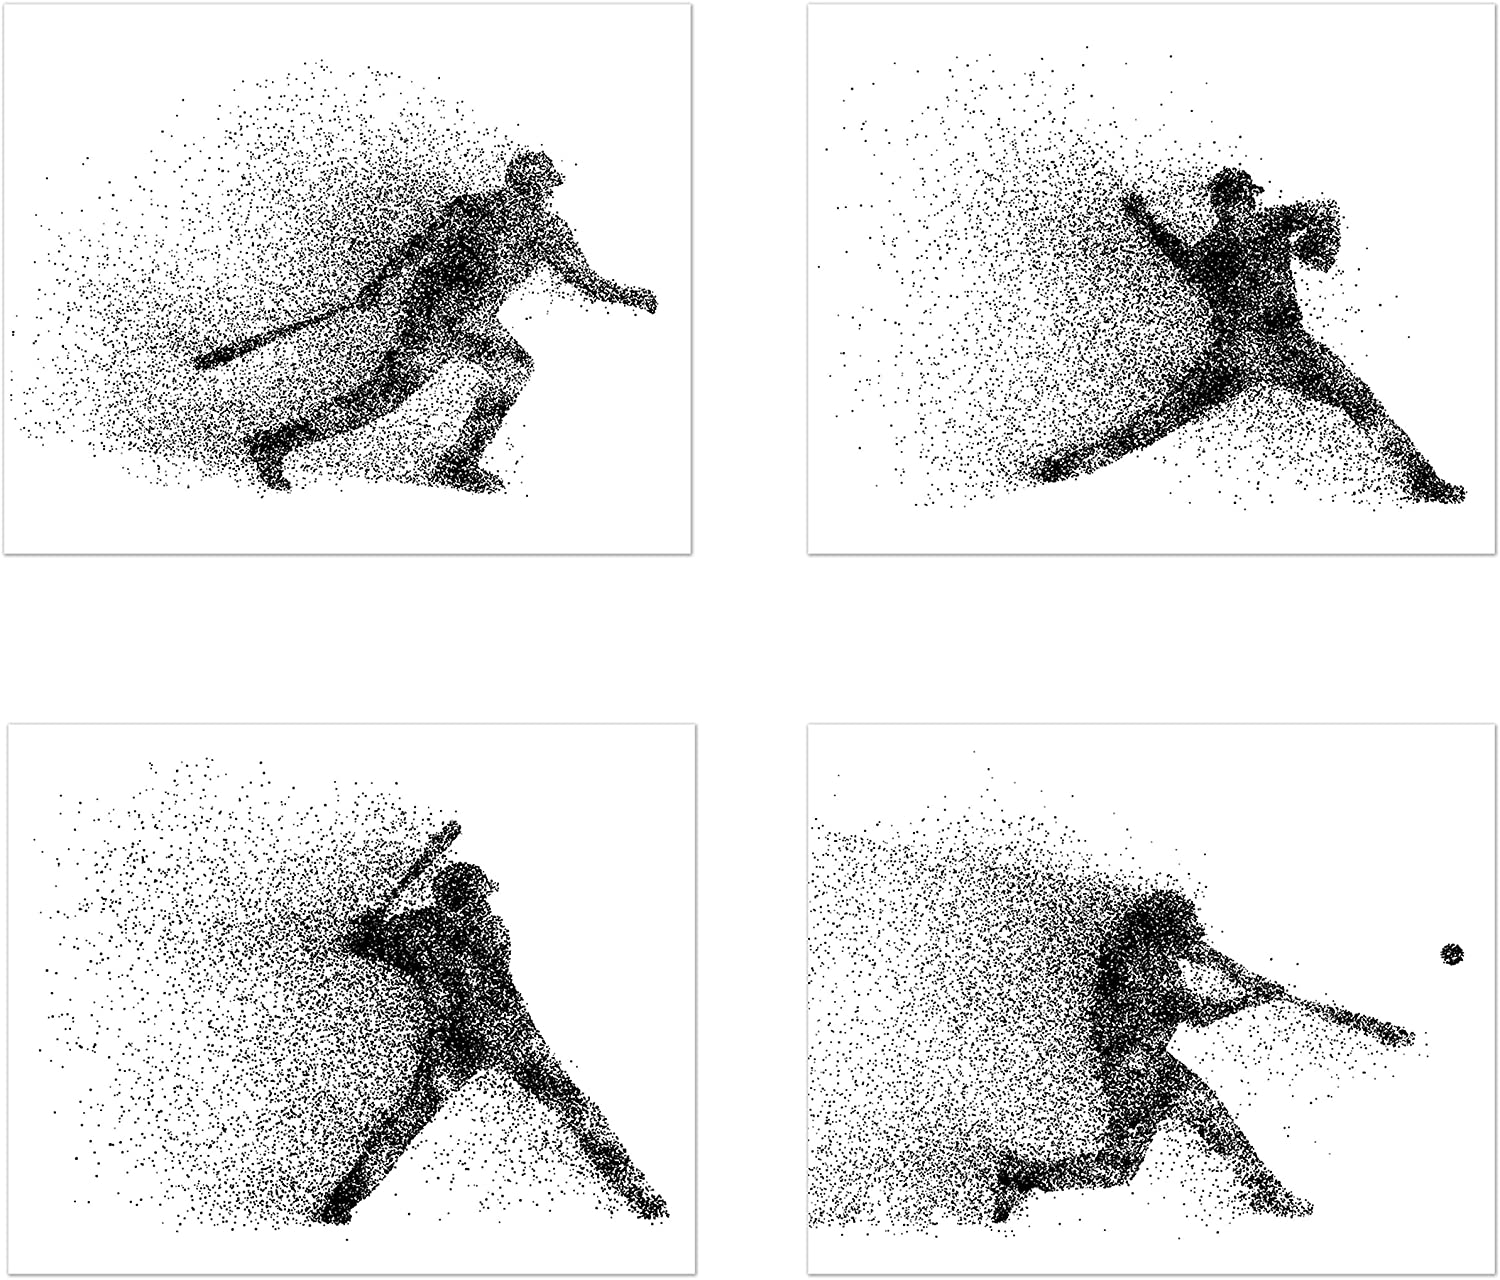 Baseball Wall Art Prints - Particle Silhouette - Set of 4 (8x10) Poster Photos - Bedroom - Man Cave Decor